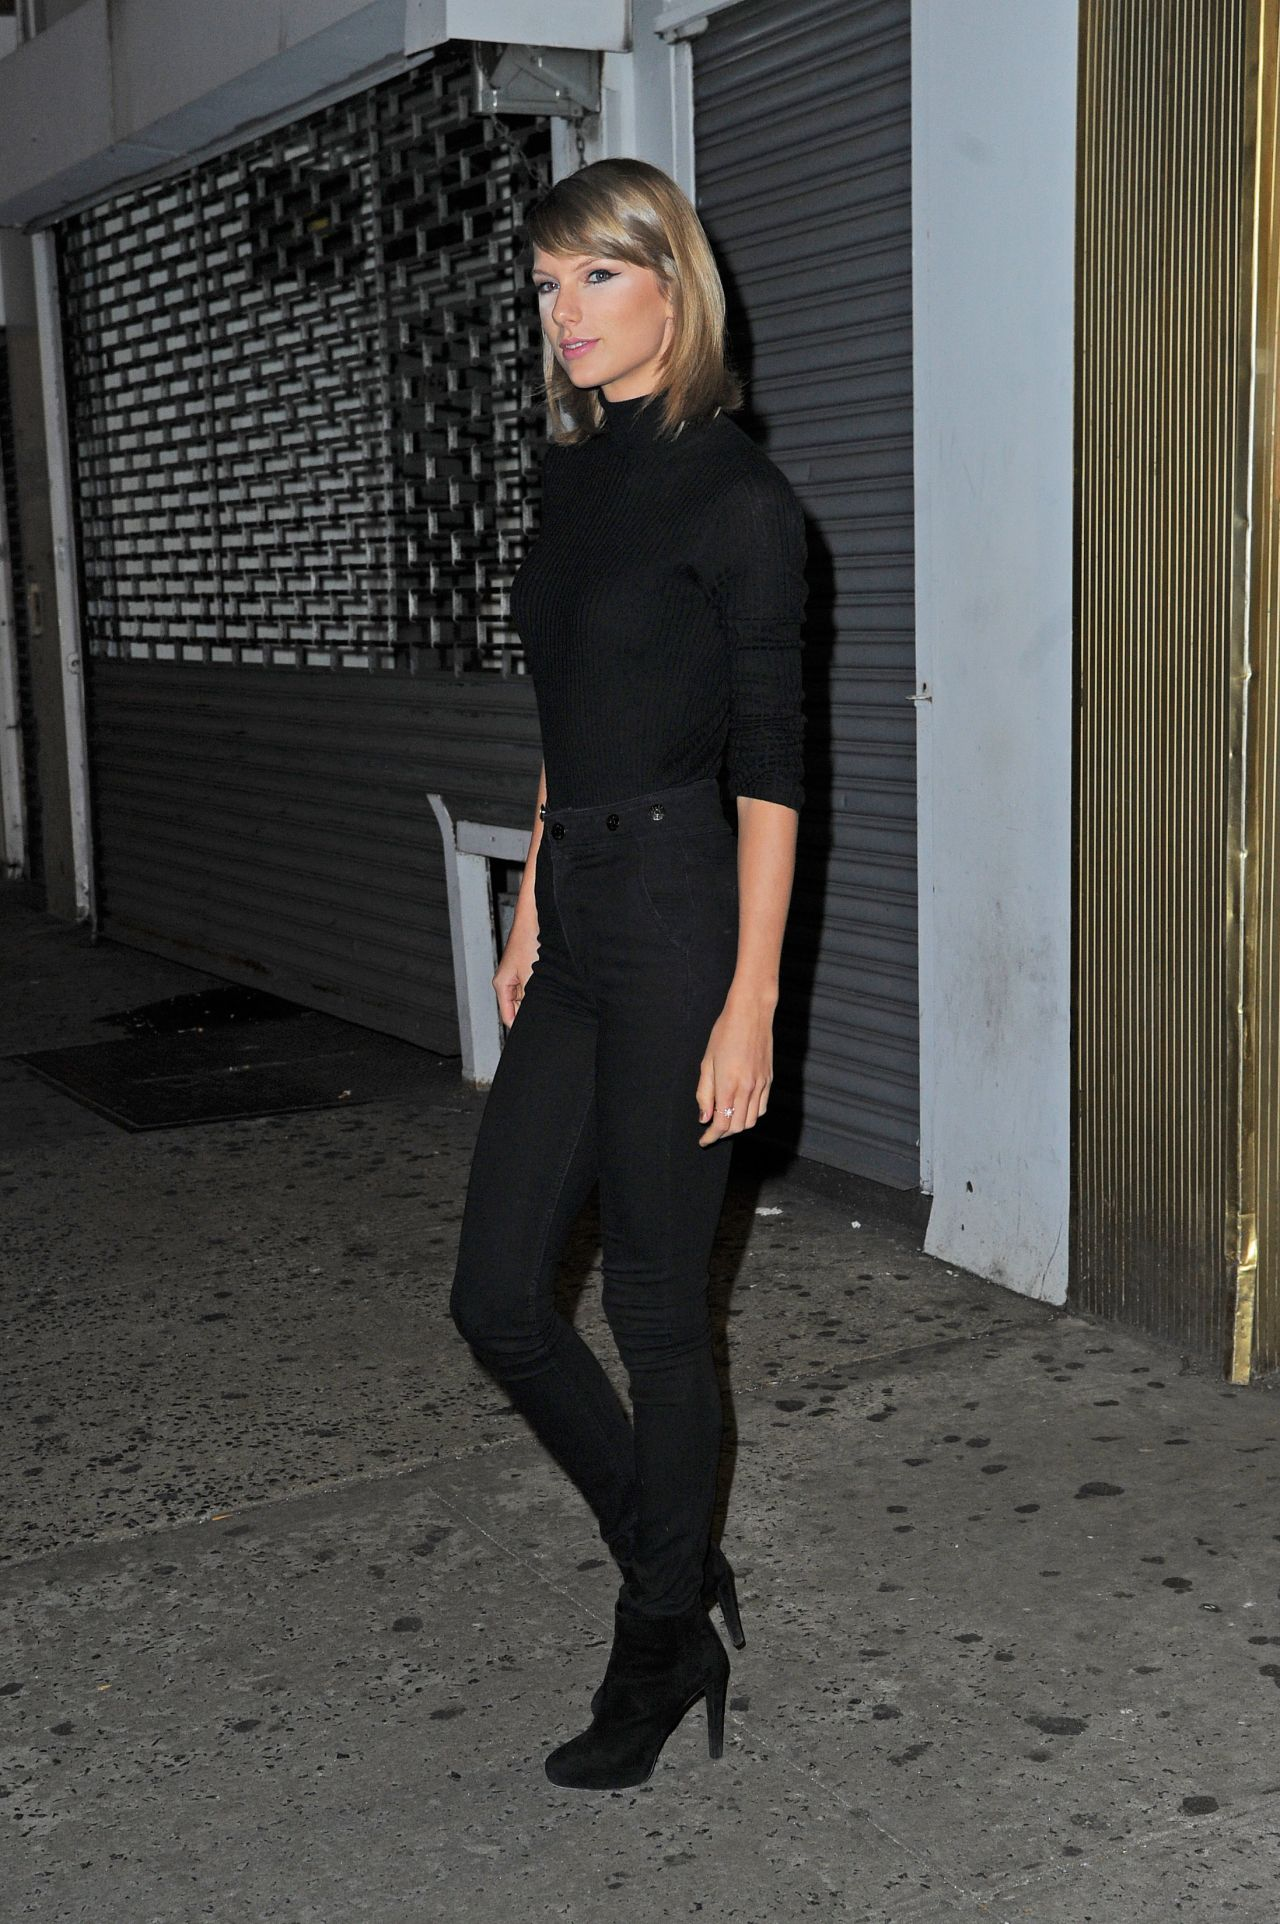 Taylor Swift Booty In Jeans Out In New York City